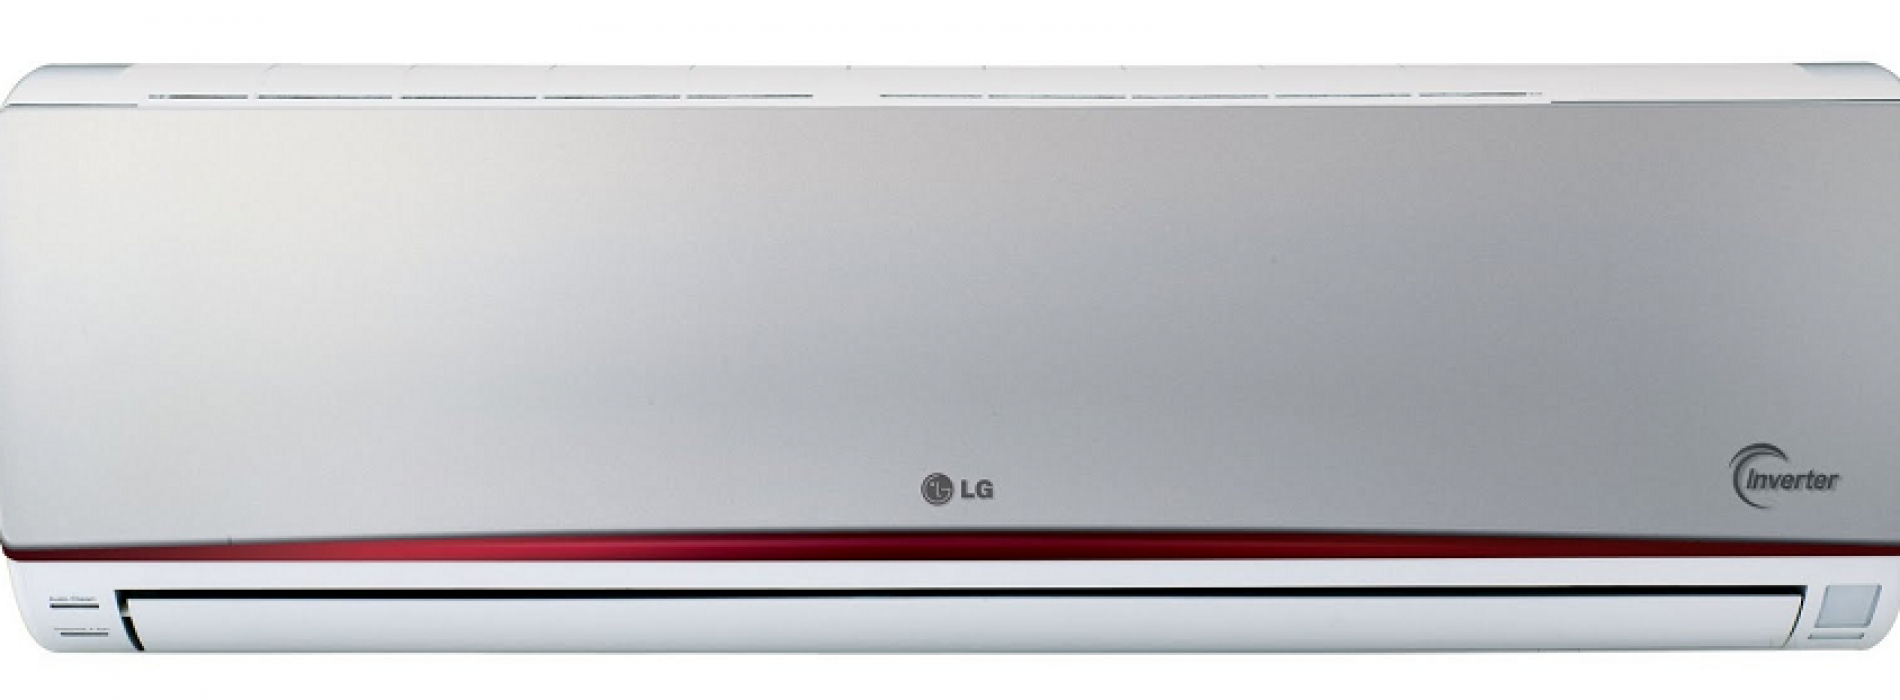 LG Air Conditioners – Make You Cool & Comfortable During Scorching Summer